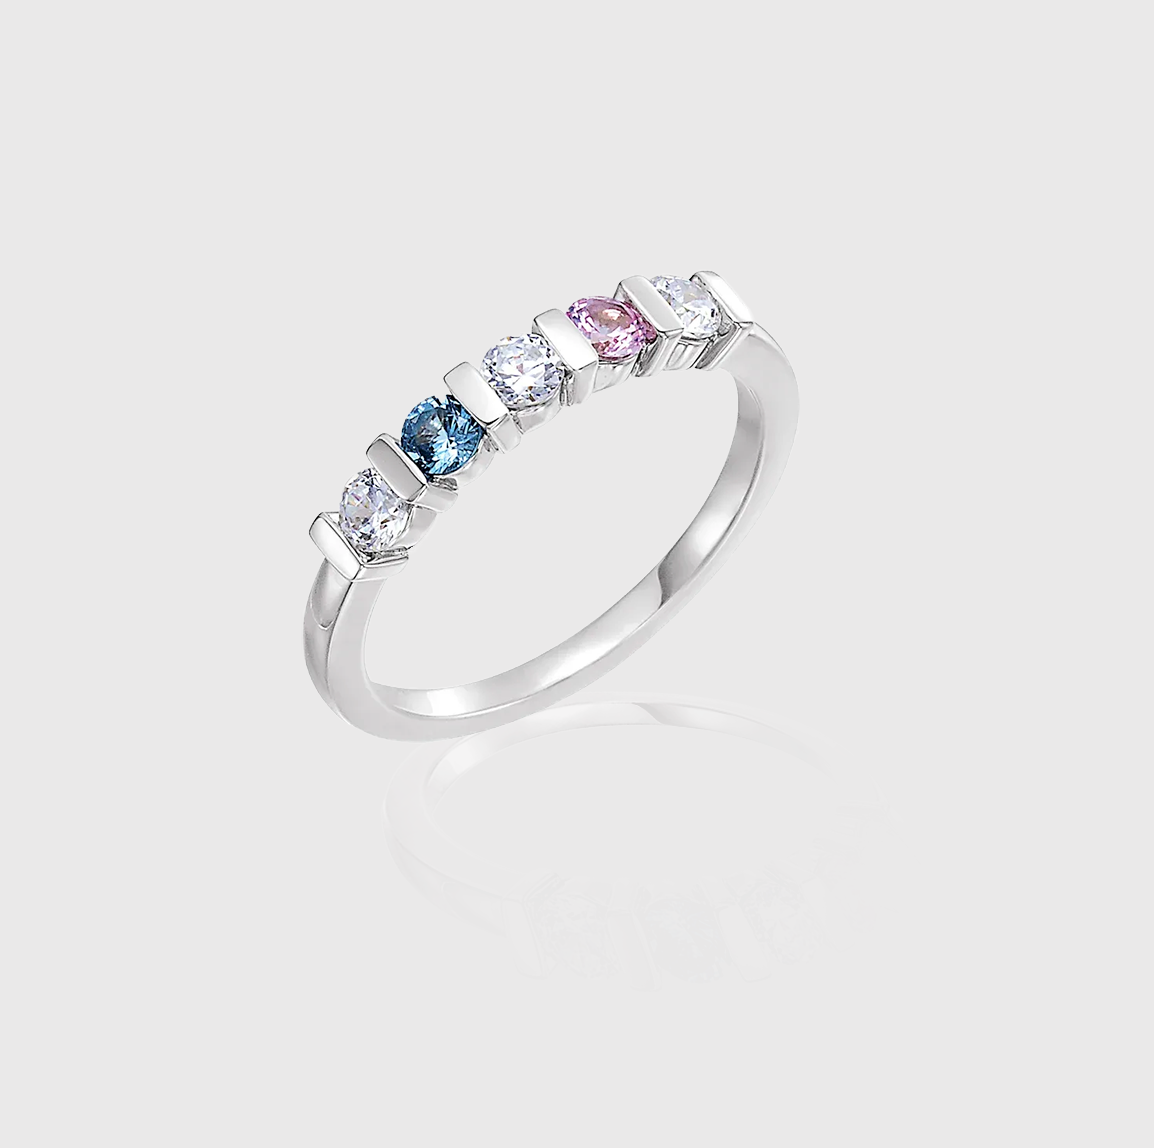 In the Band Staccato Five-Stone Family Ring